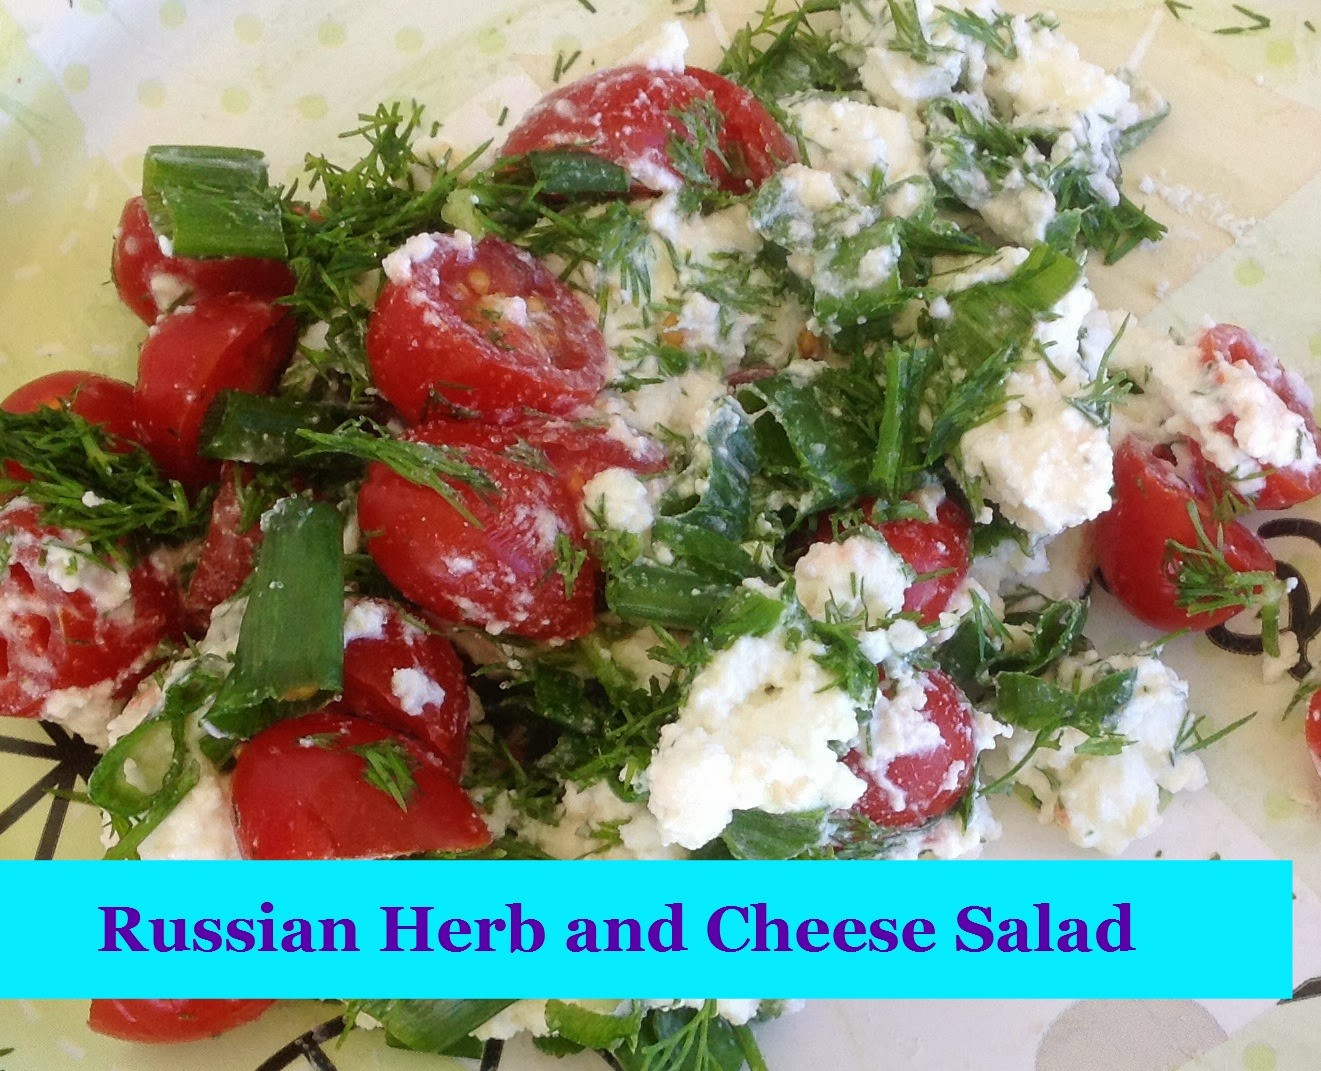 Russian style cheese salad